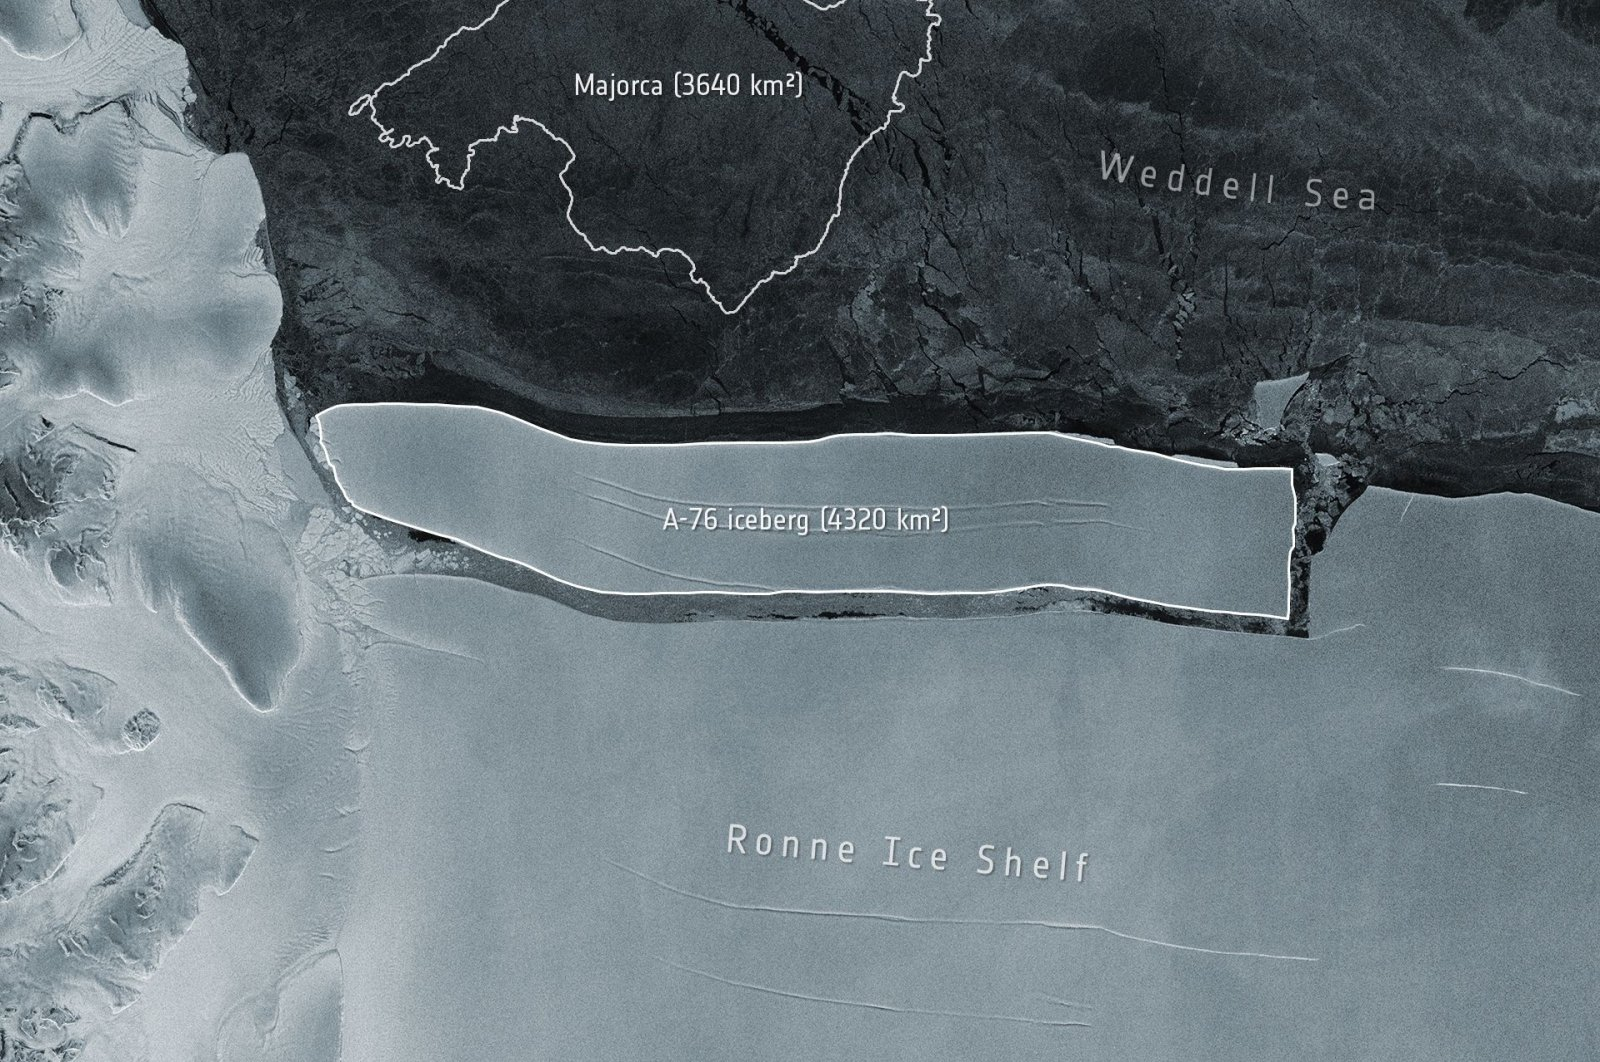 This handout image, released by The European Space Agency (ESA) on May 20, 2021, shows a view captured by the Copernicus Sentinel-1 mission  – combined with a graphic of the Spanish island of Majorca for scale – of the A-76 iceberg floating away from the Ronne Ice Shelf in the Weddell Sea, Antarctica, March 9, 2021. (EUROPEAN SPACE AGENCY/AFP Photo)